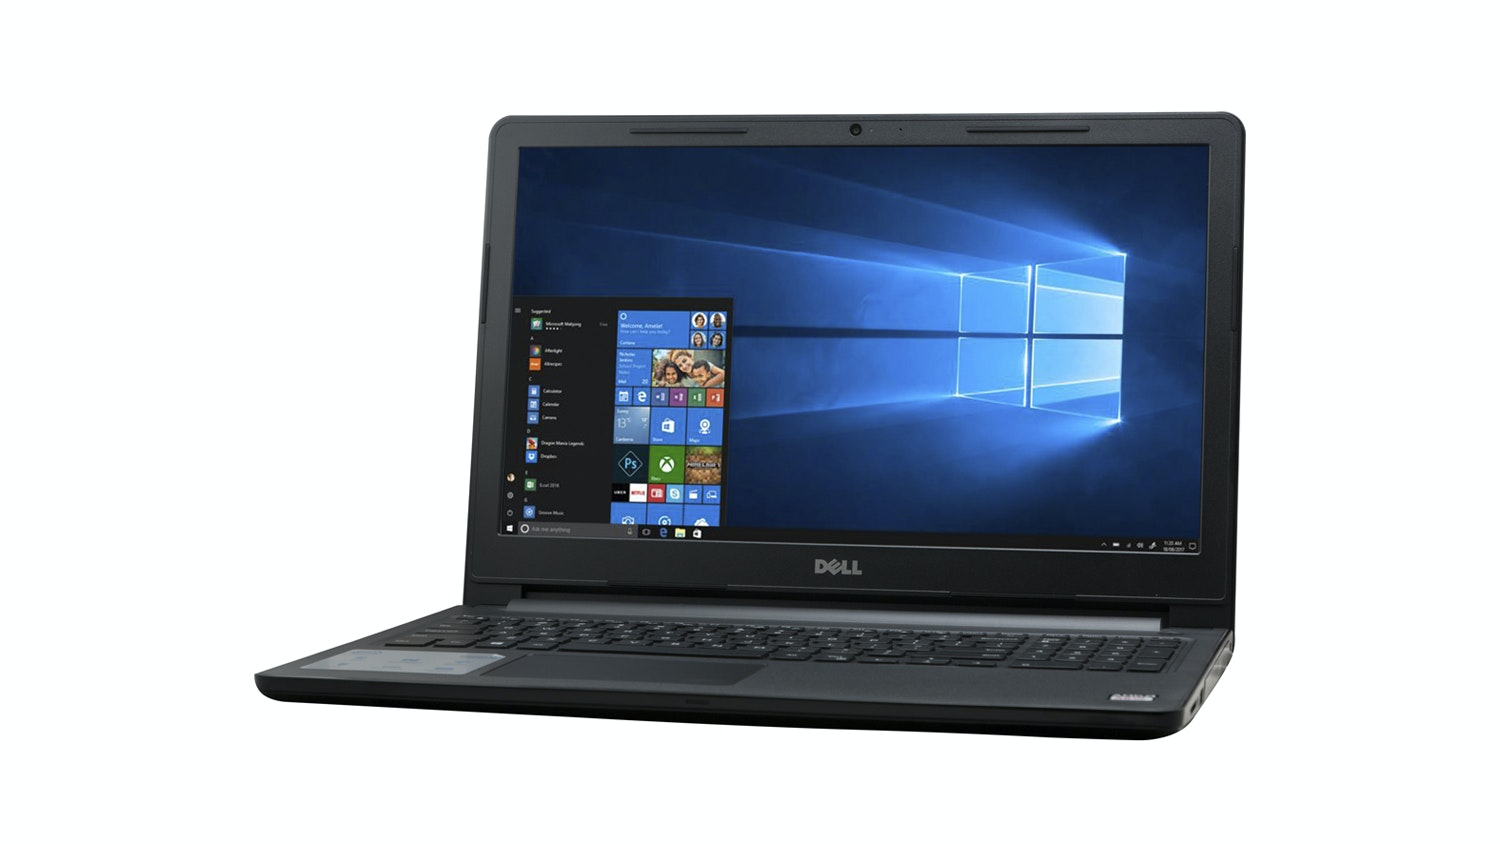 Dell Inspiron I3565-A125BLK-PUS Front Facing Left